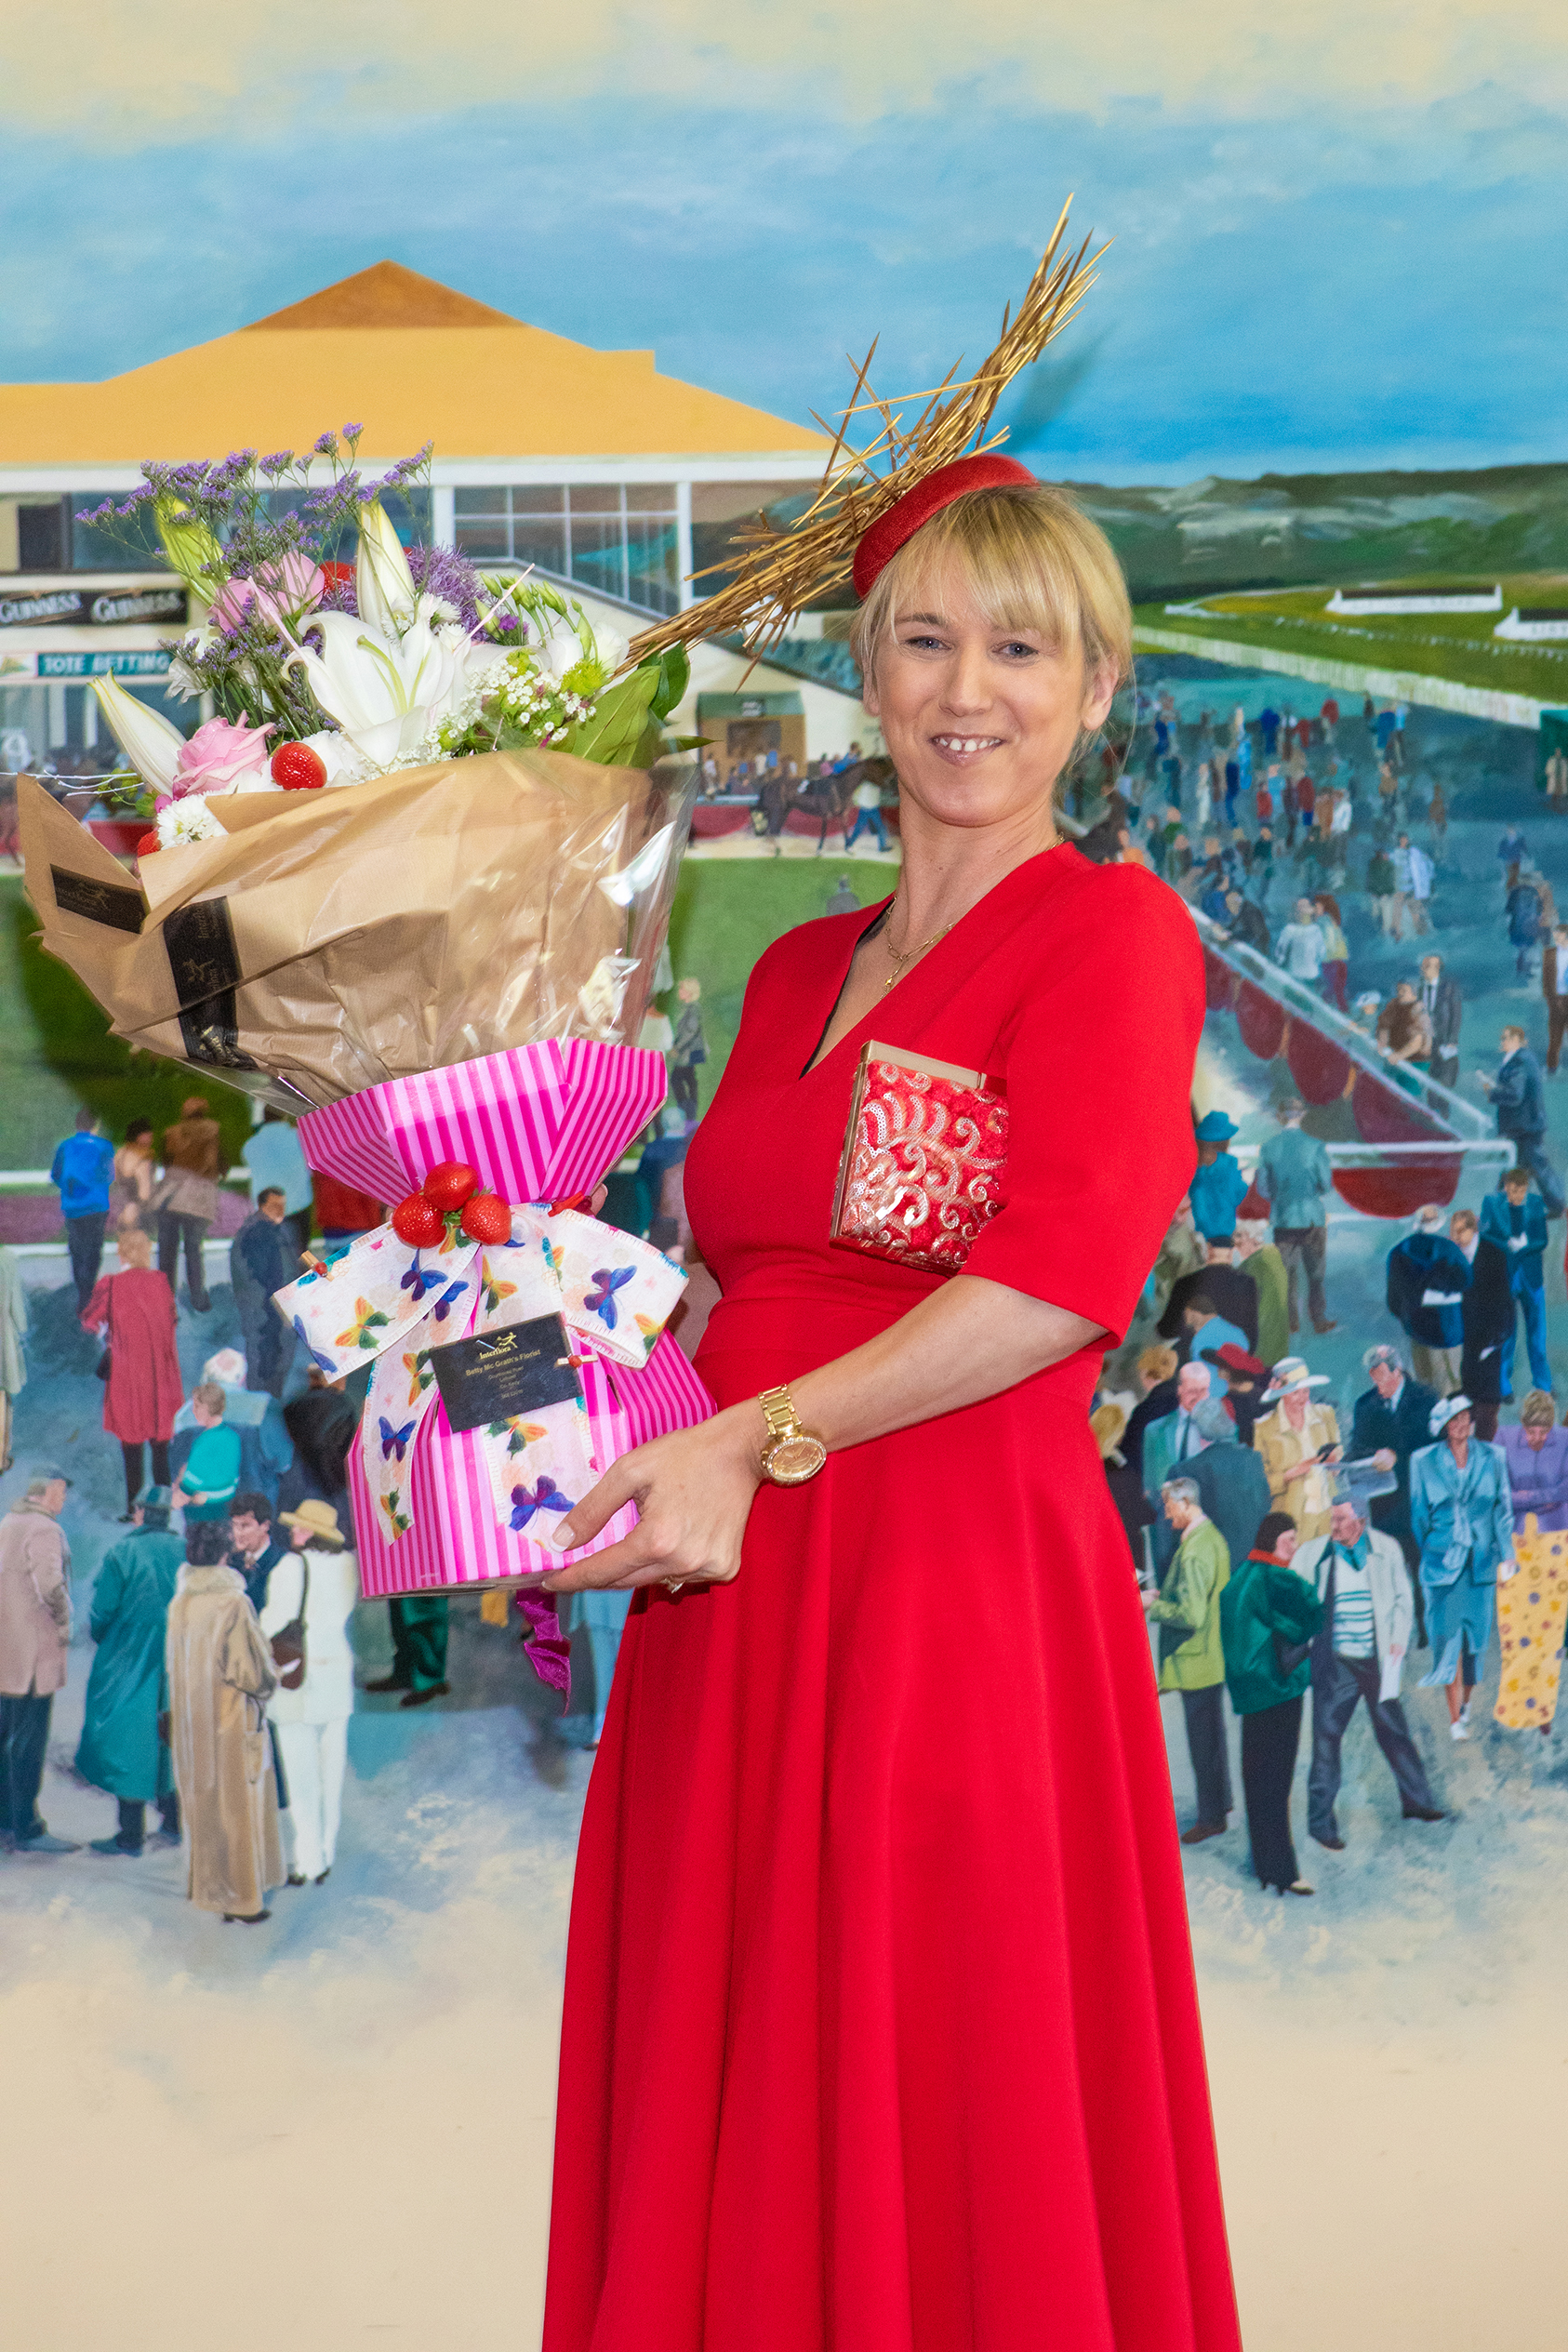 Aine Wall wins the Listowel Races Best Dressed Lady title at Listowel Races on Sunday 2nd of June. Judged by Helen Quealy Murphy aka Daily Diva Diary, she won €800. Photo Credit: JK Photography